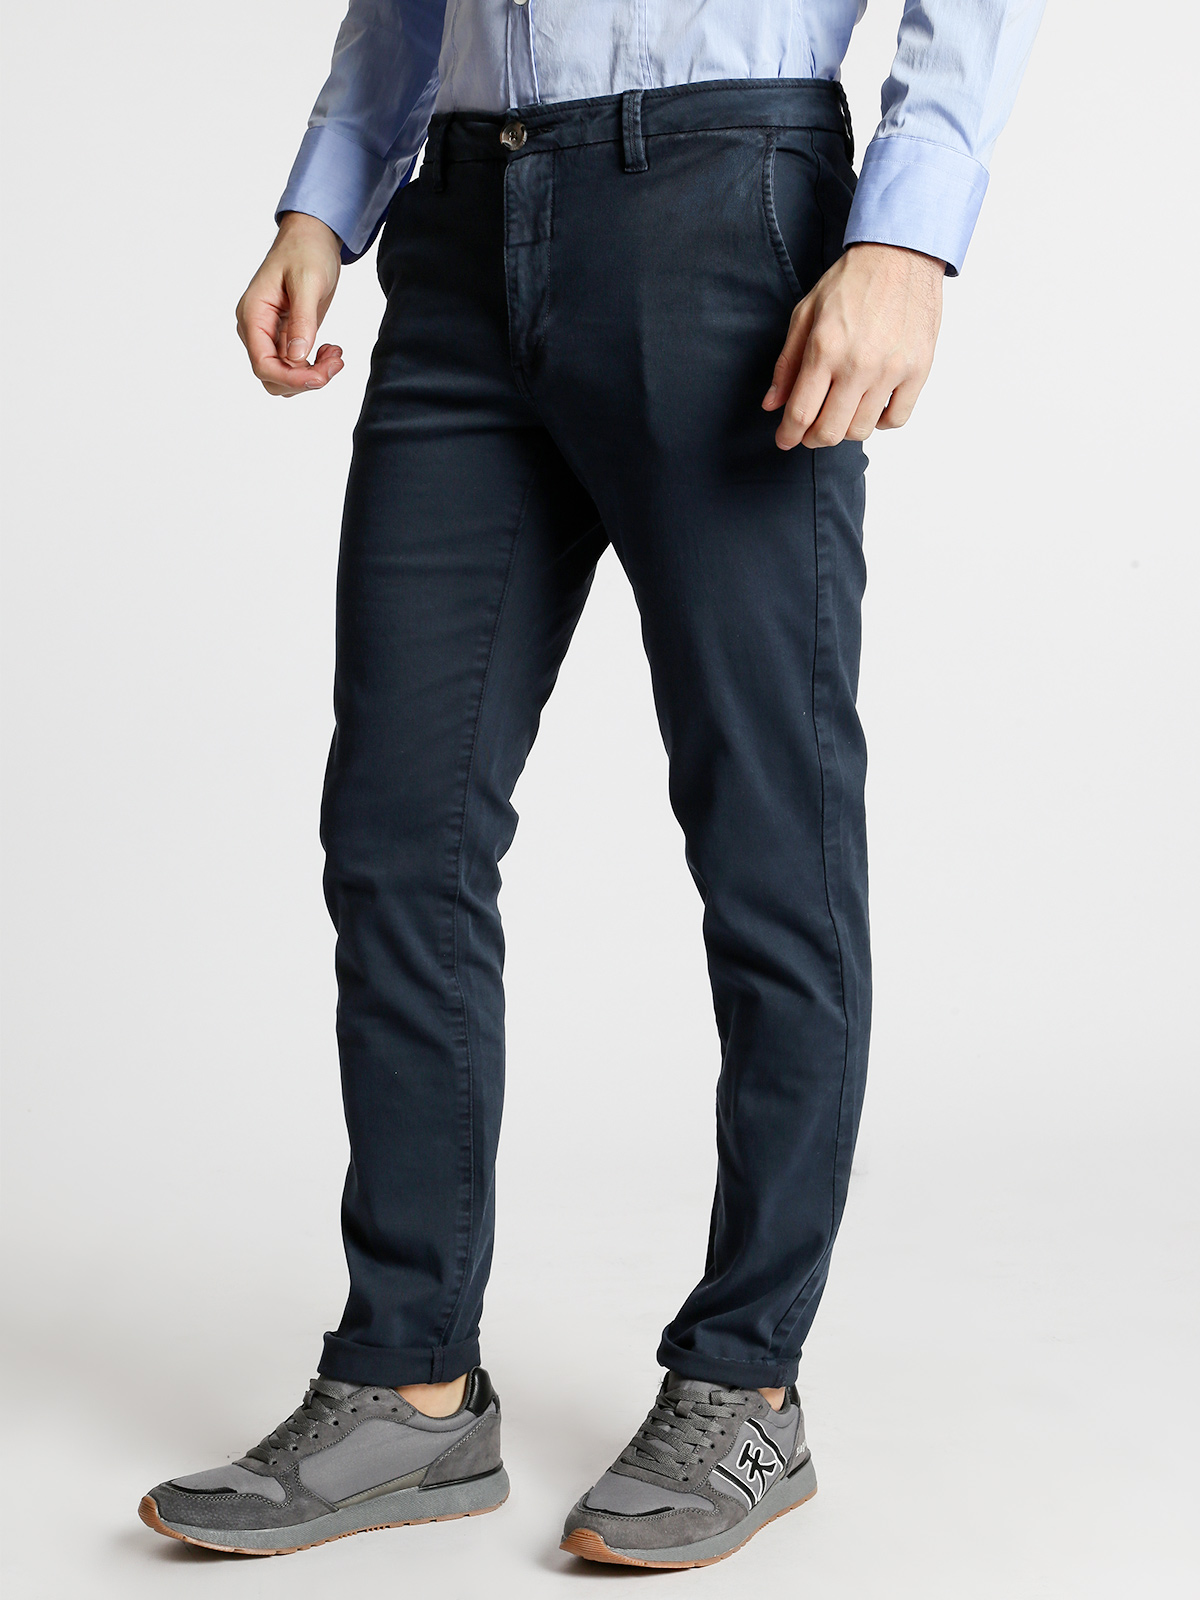 Chino Pants Cotton Slim Fit